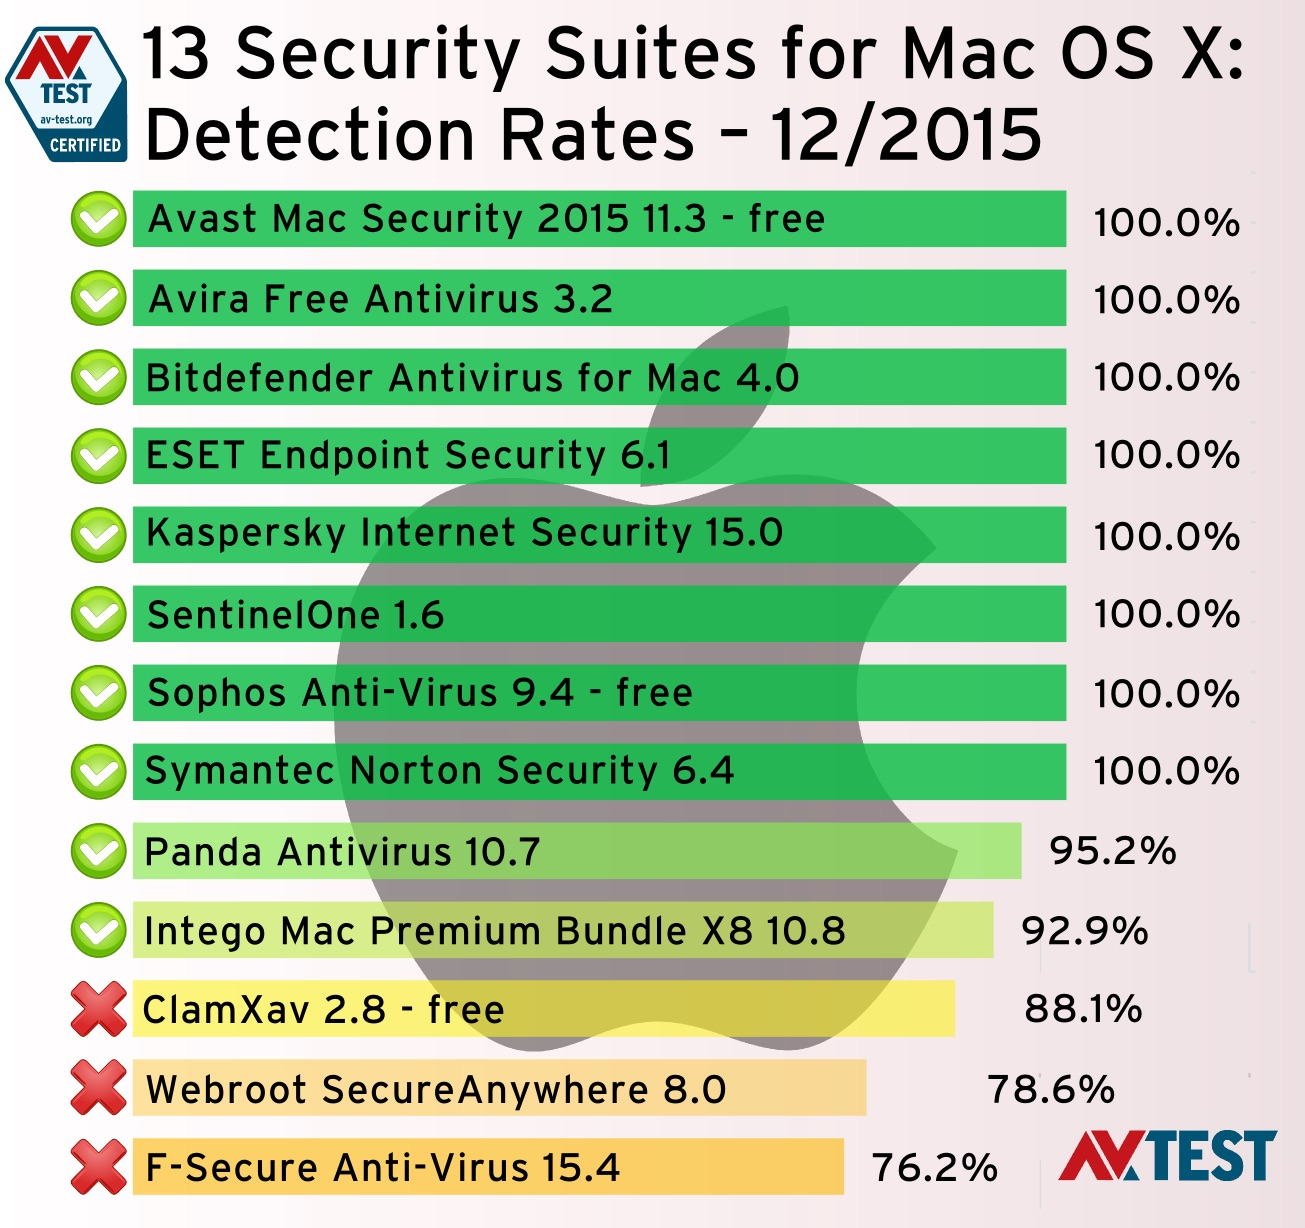 AV-TEST-13-Security-app-2015-12